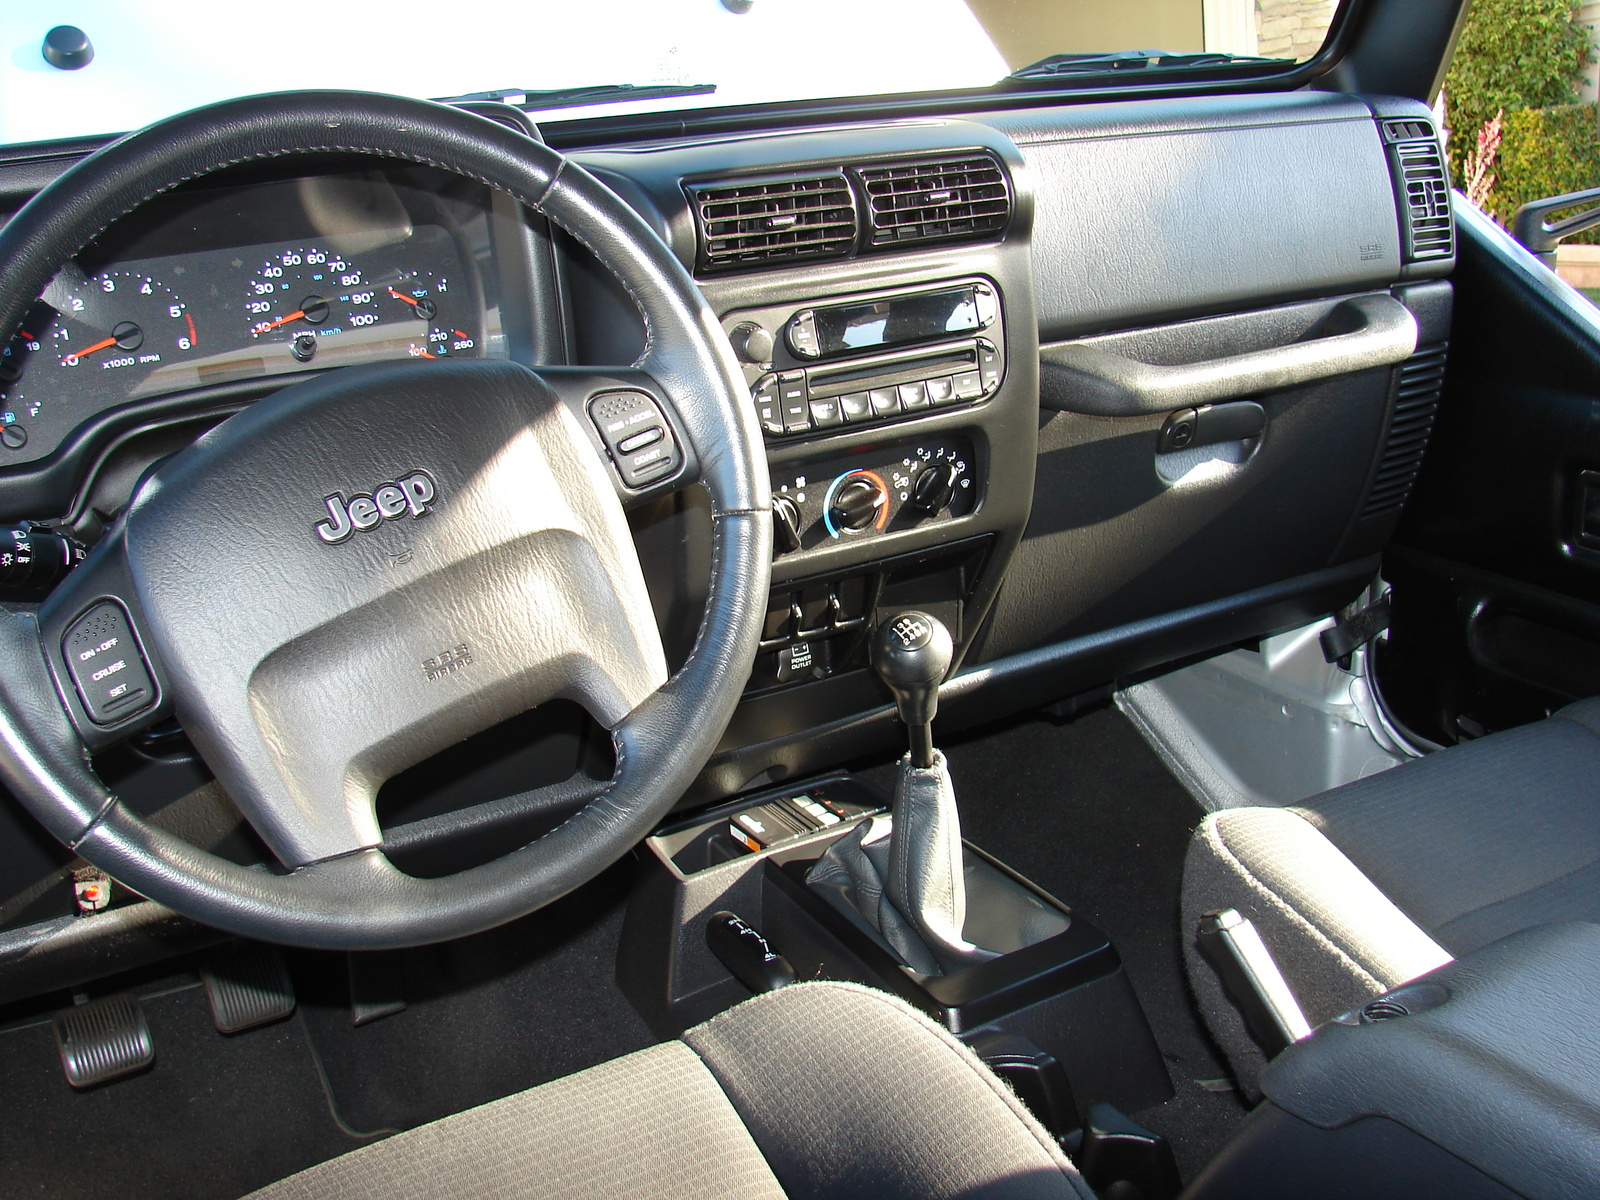 2006 jeep wrangler interior pictures cargurus. Cars Review. Best American Auto & Cars Review